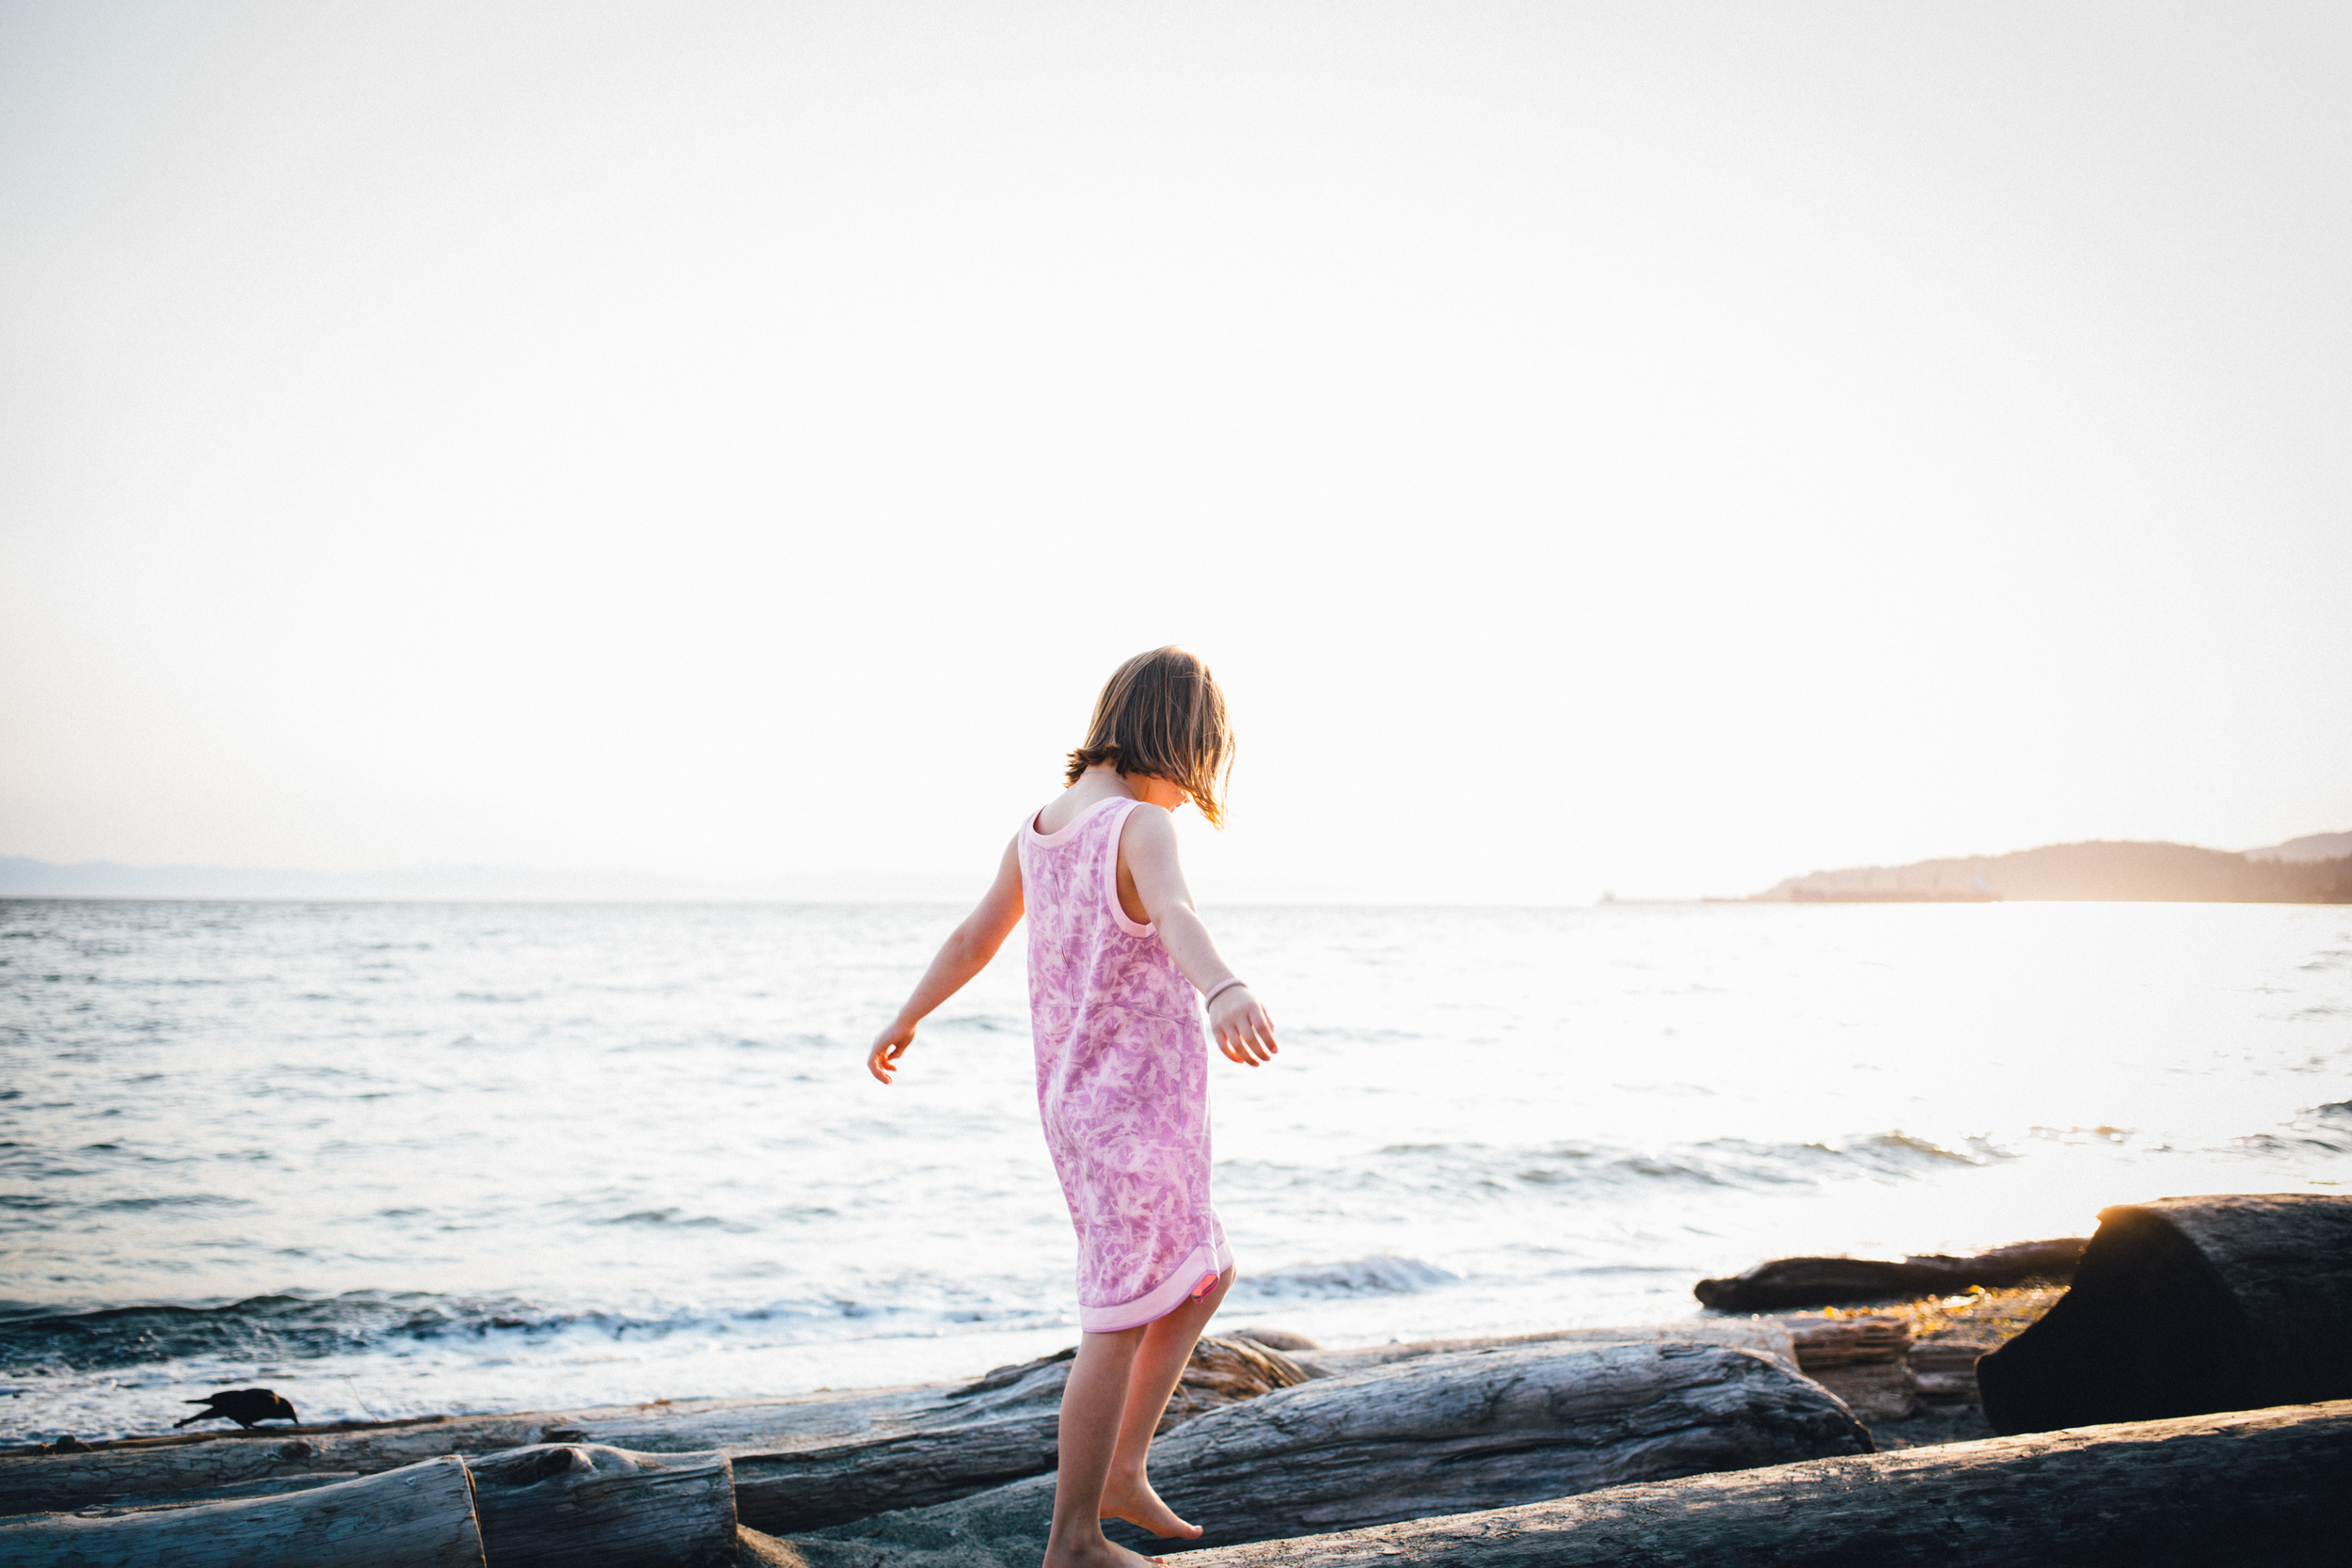 vancouver_photographer_child_family_DogwoodPhotography_laurenwatson-56.jpg